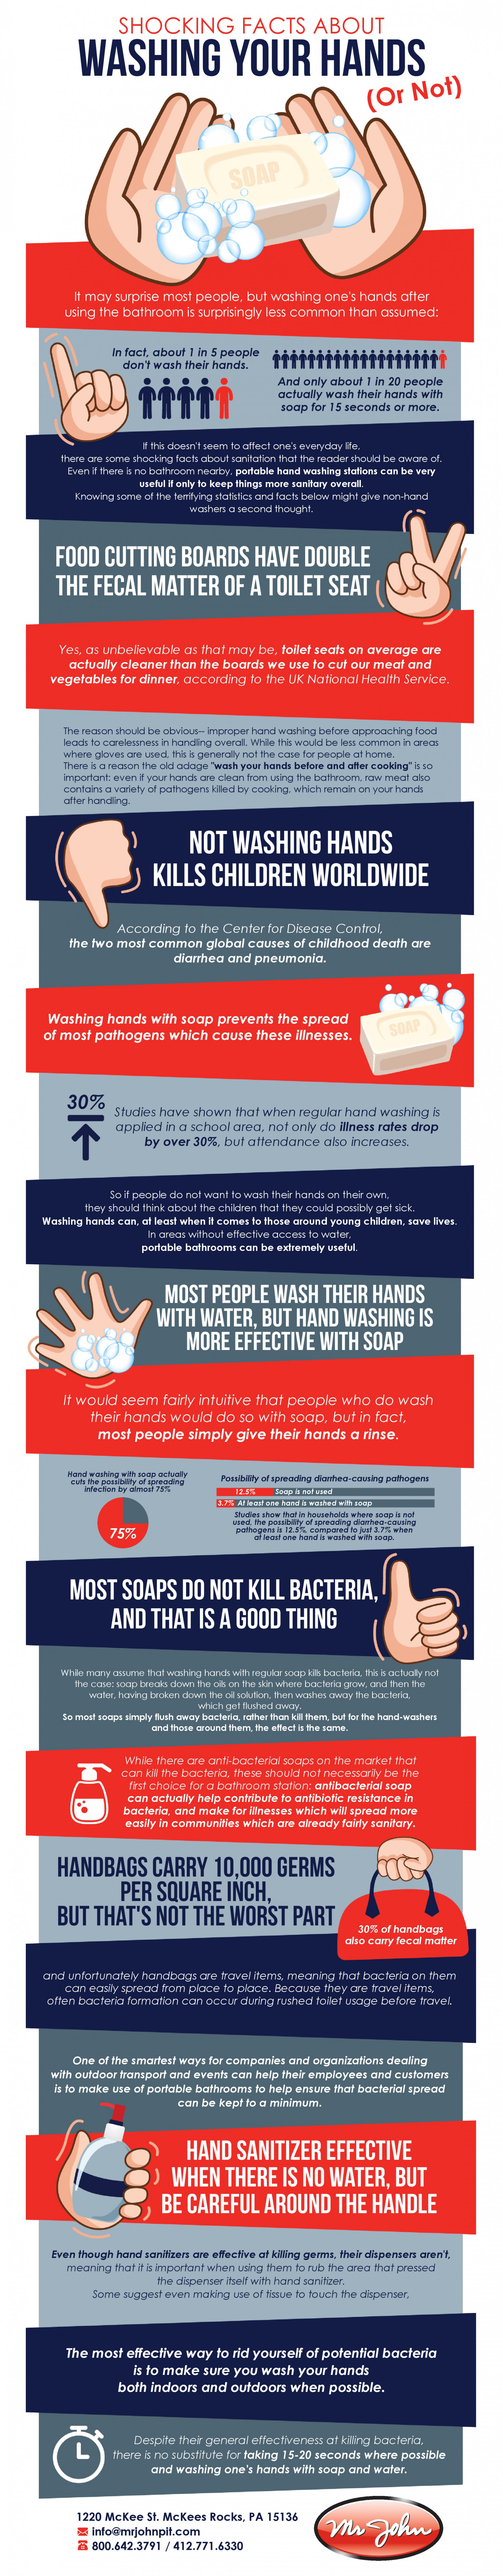 Shocking Facts About Washing Your Hands (Or Not!)  Infographic